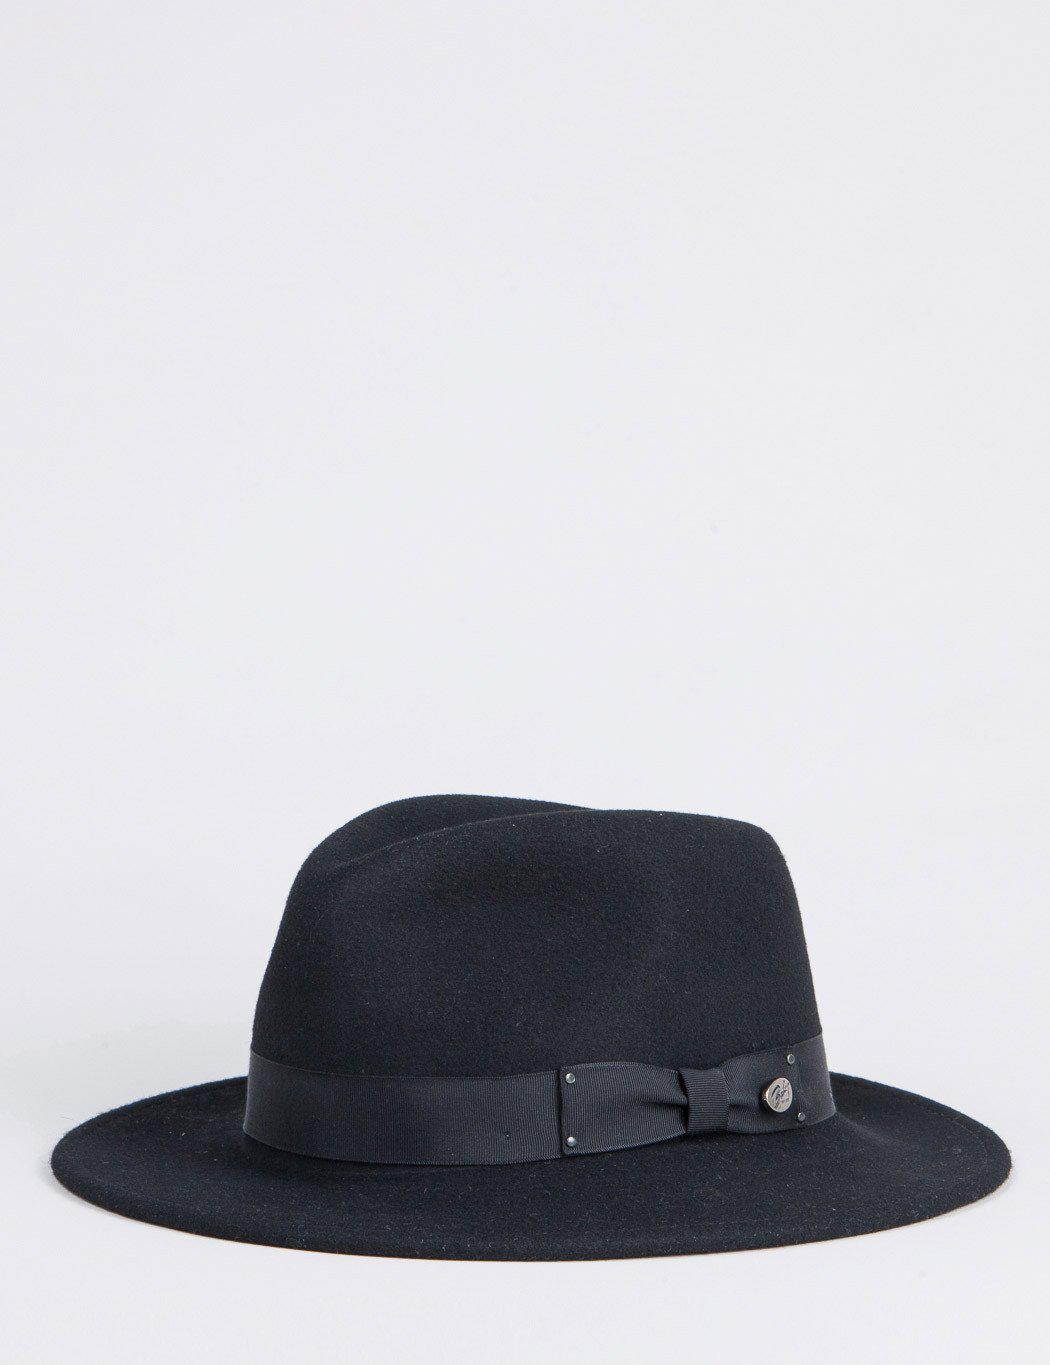 3a3639f5ae01da Bailey of Hollywood Bailey Curtis Widebrim Fedora Hat in Black for ...